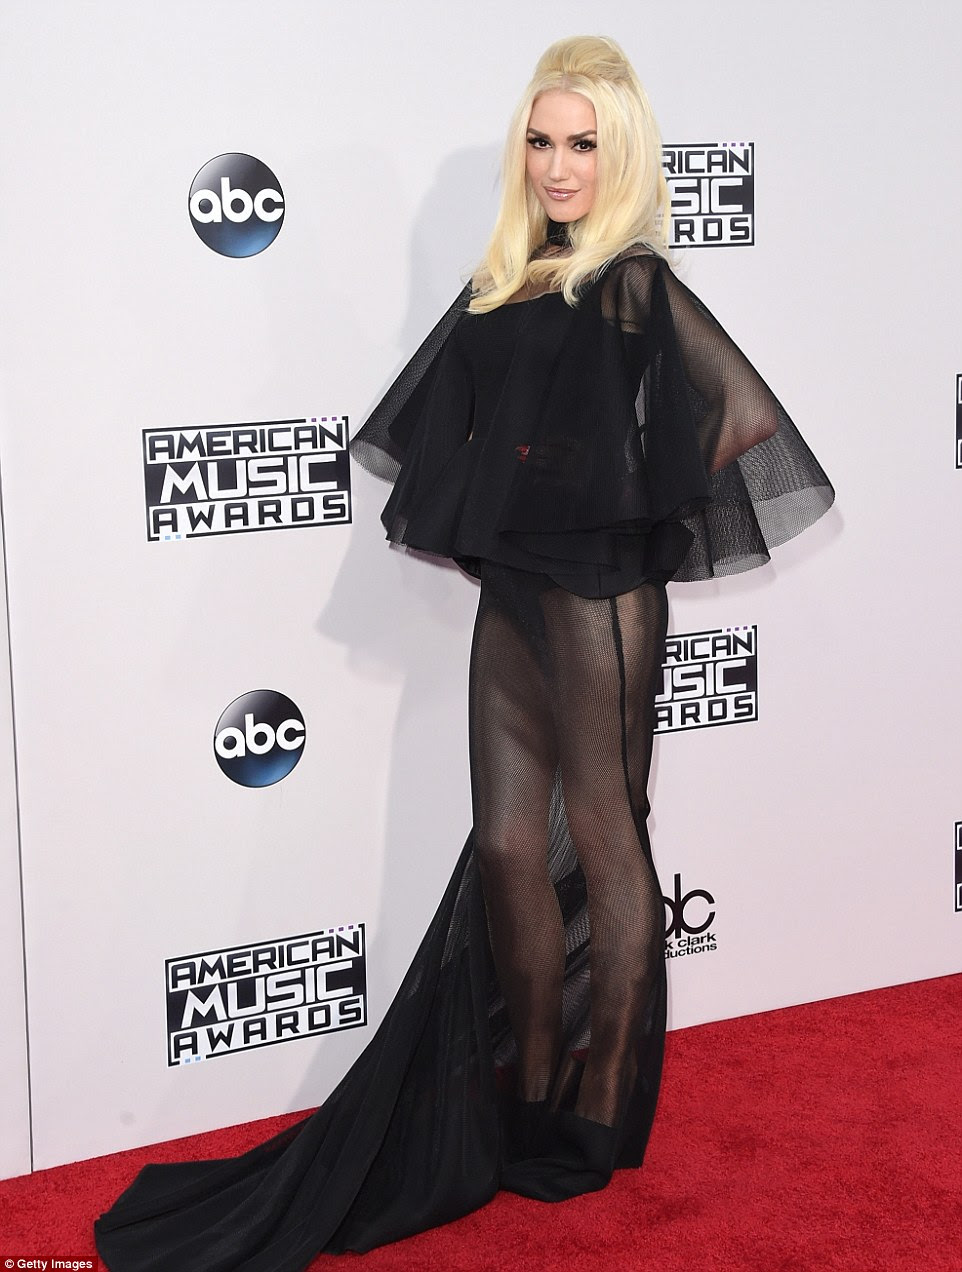 Attention grabbing: Gwen Stefani made quite a statement in a sheer black gown with dramatic ruffles